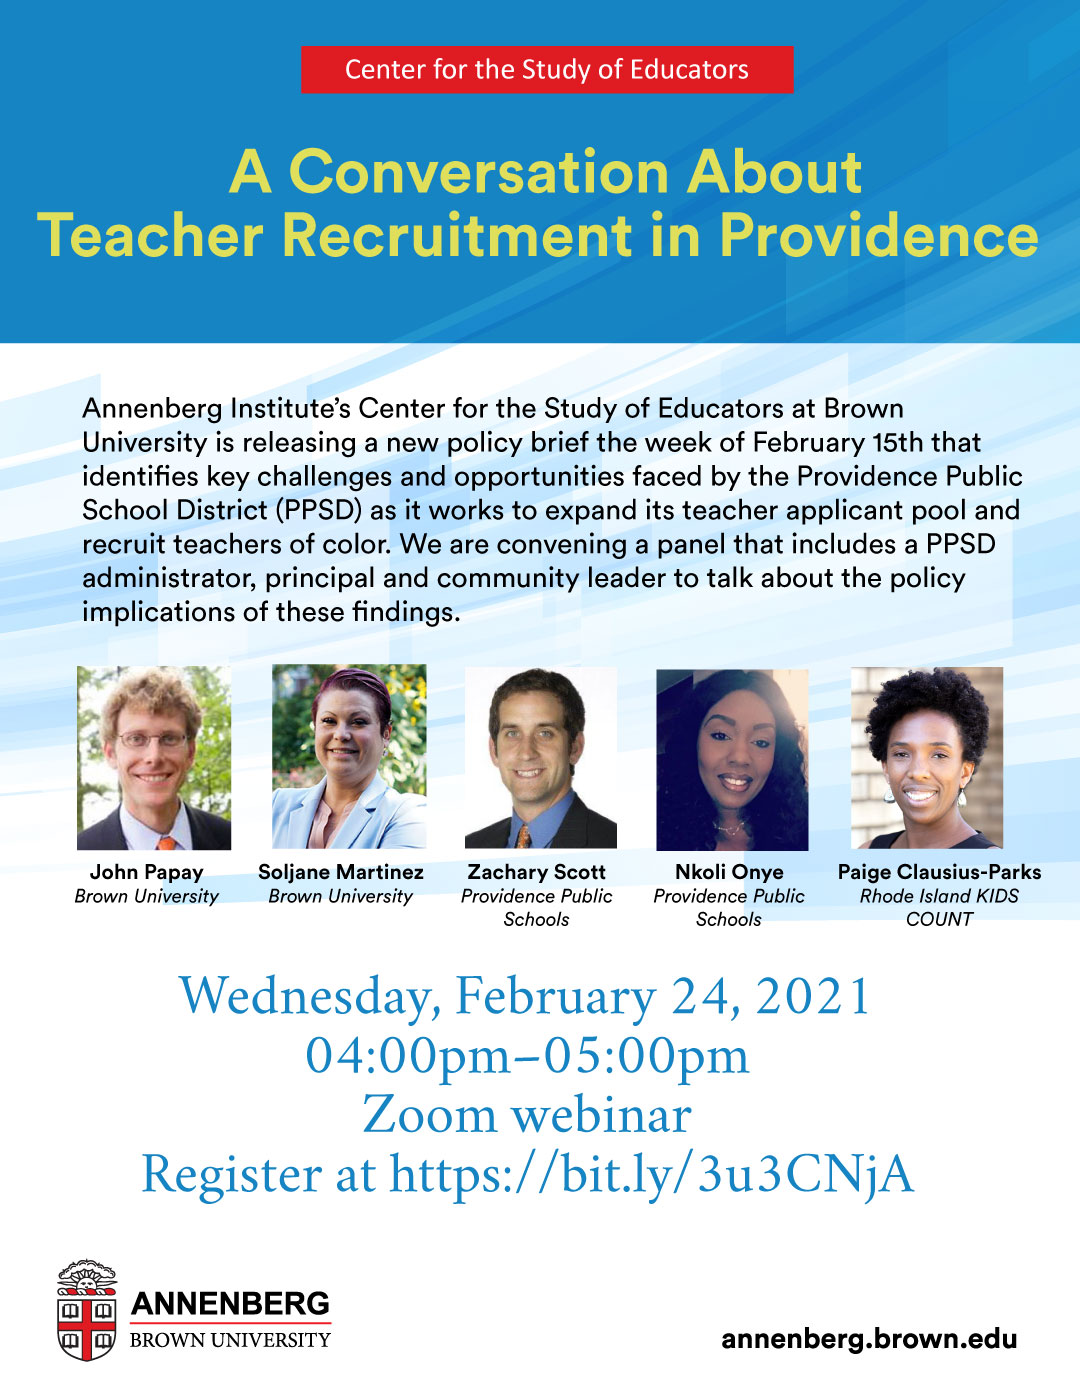 A Conversation About Teacher Recruitment in Providence